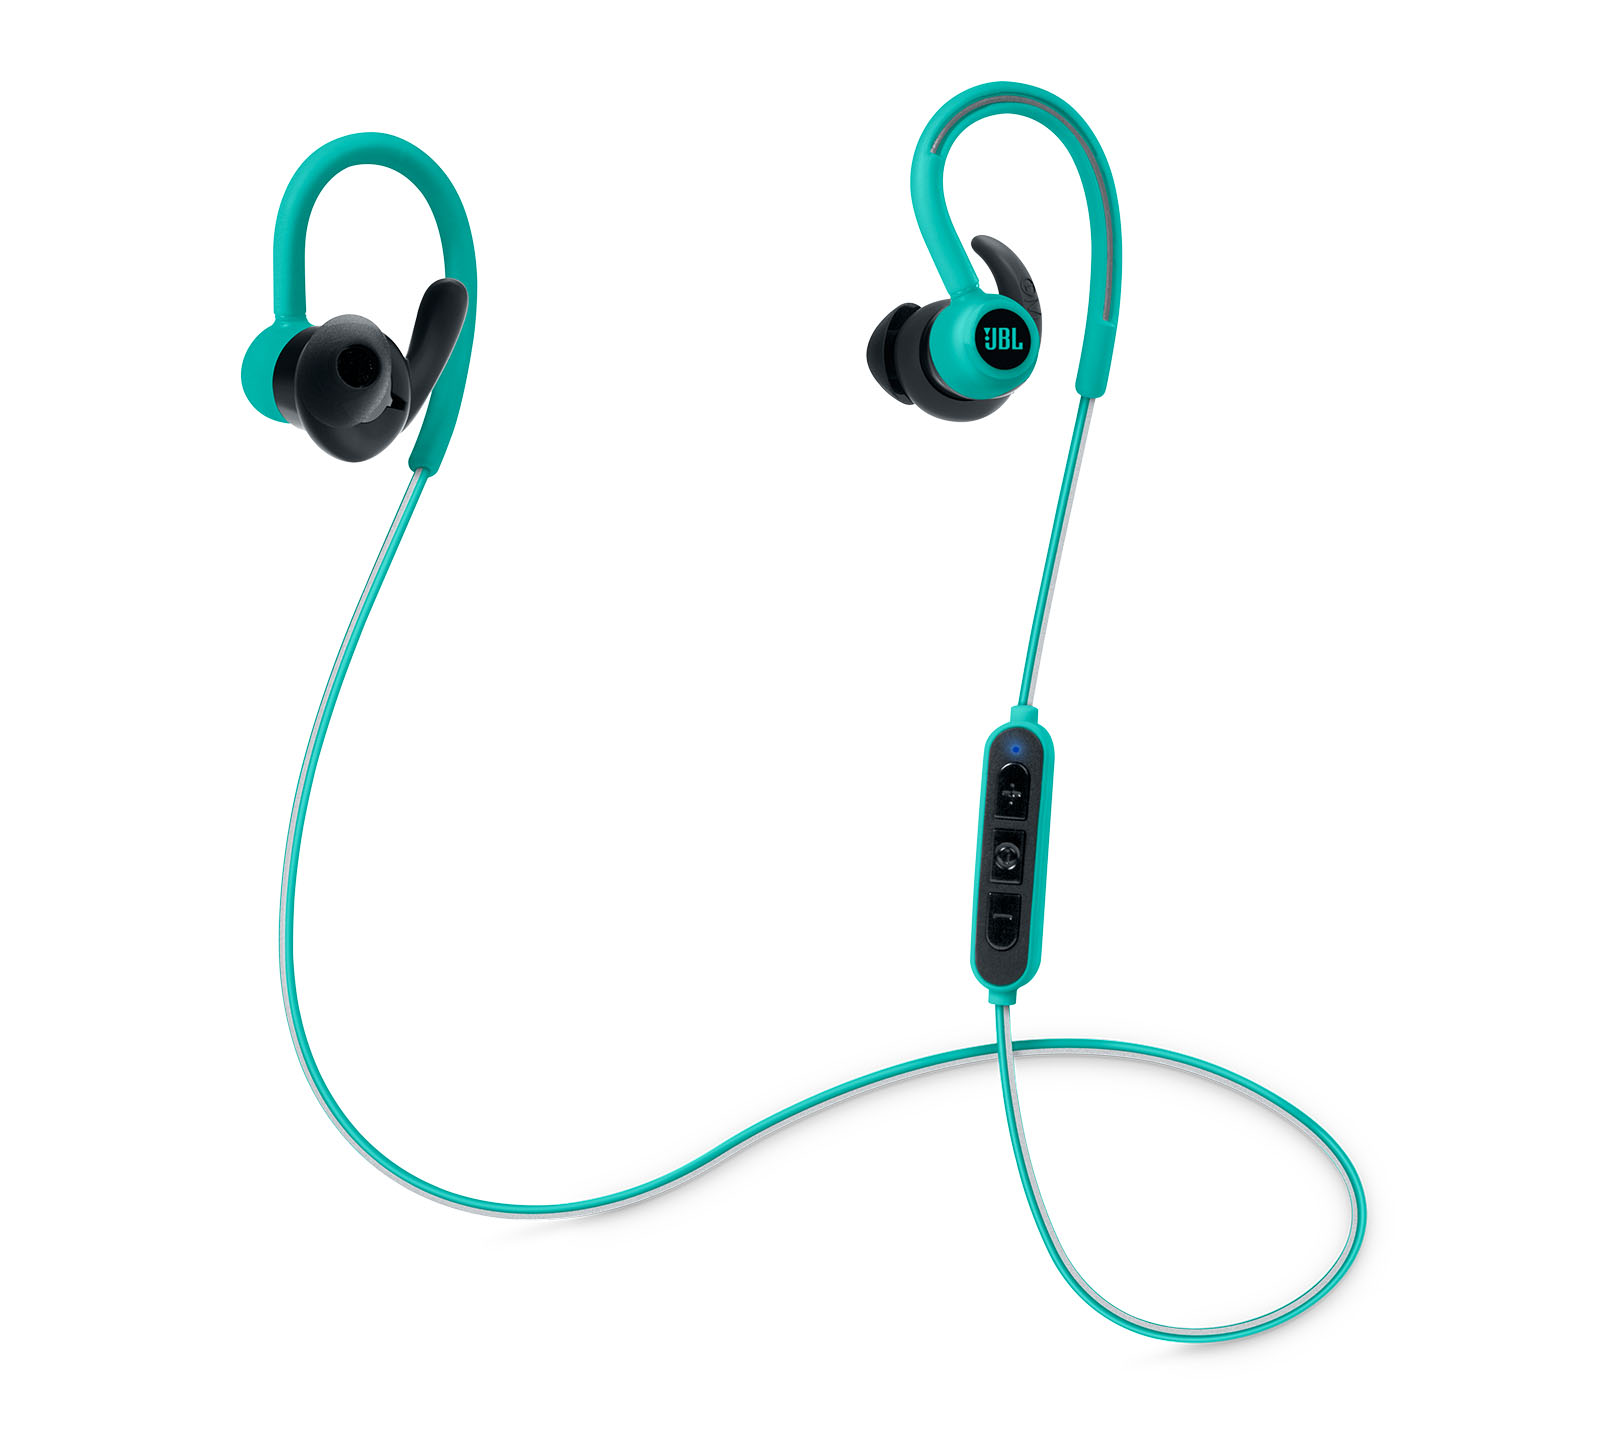 JBL Reflect Contour Teal: Secure Fit & Sweat Proof Wireless Sport Headphones + JBL Signature Sound